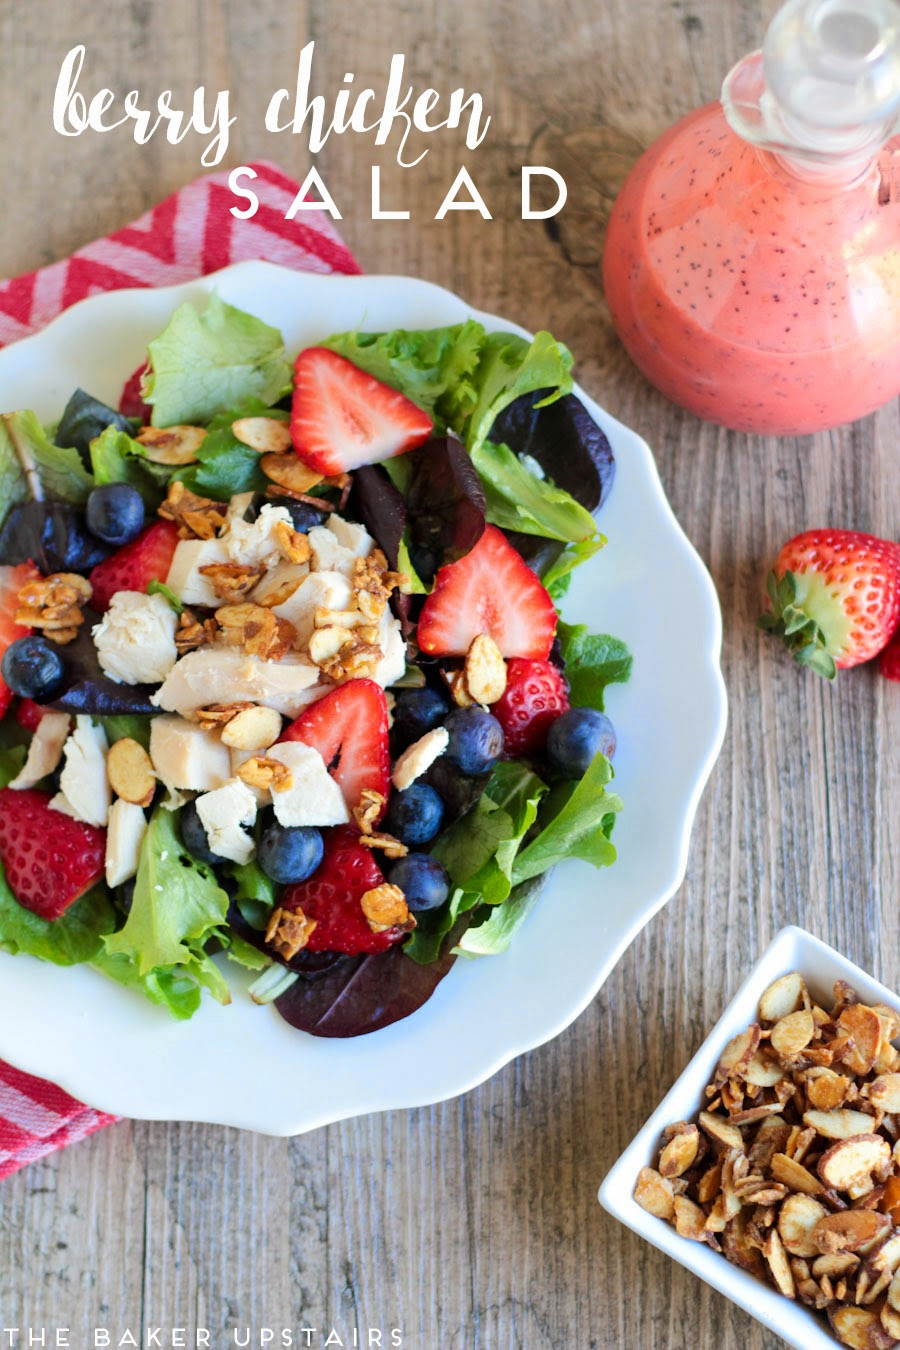 Berry chicken salad and easy candied almonds - so fresh, healthy, and delicious!